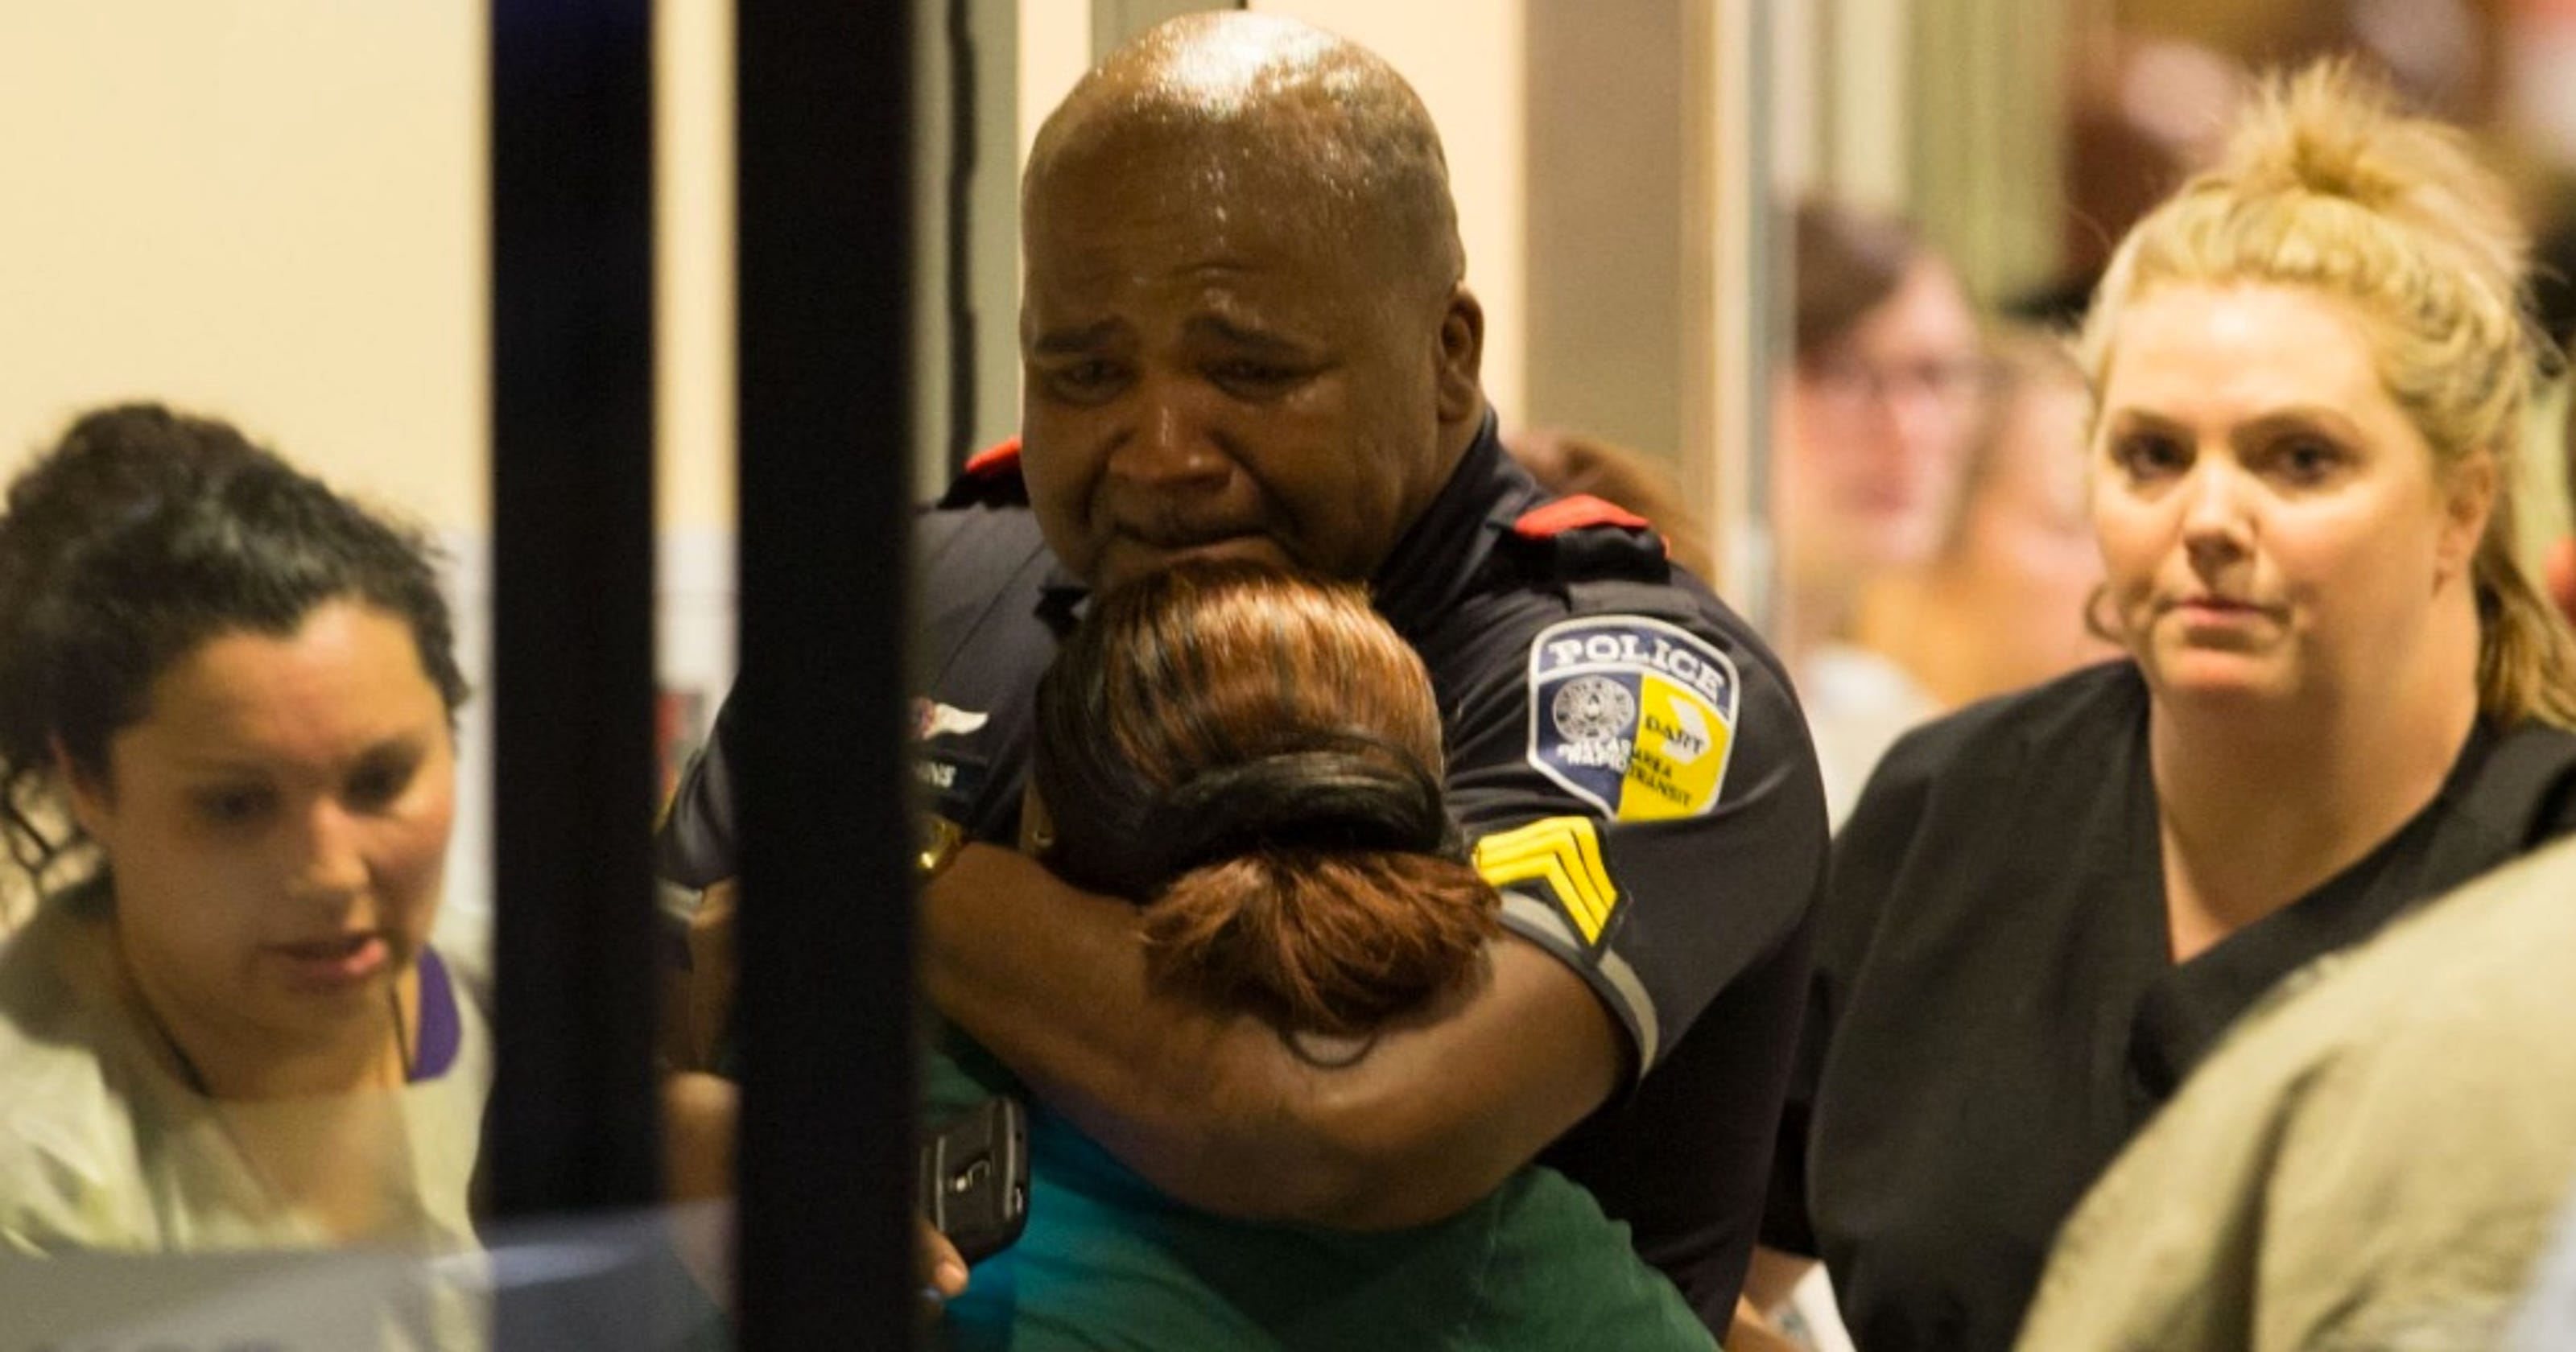 Dallas shootings: A tipping point in angst over race, police?